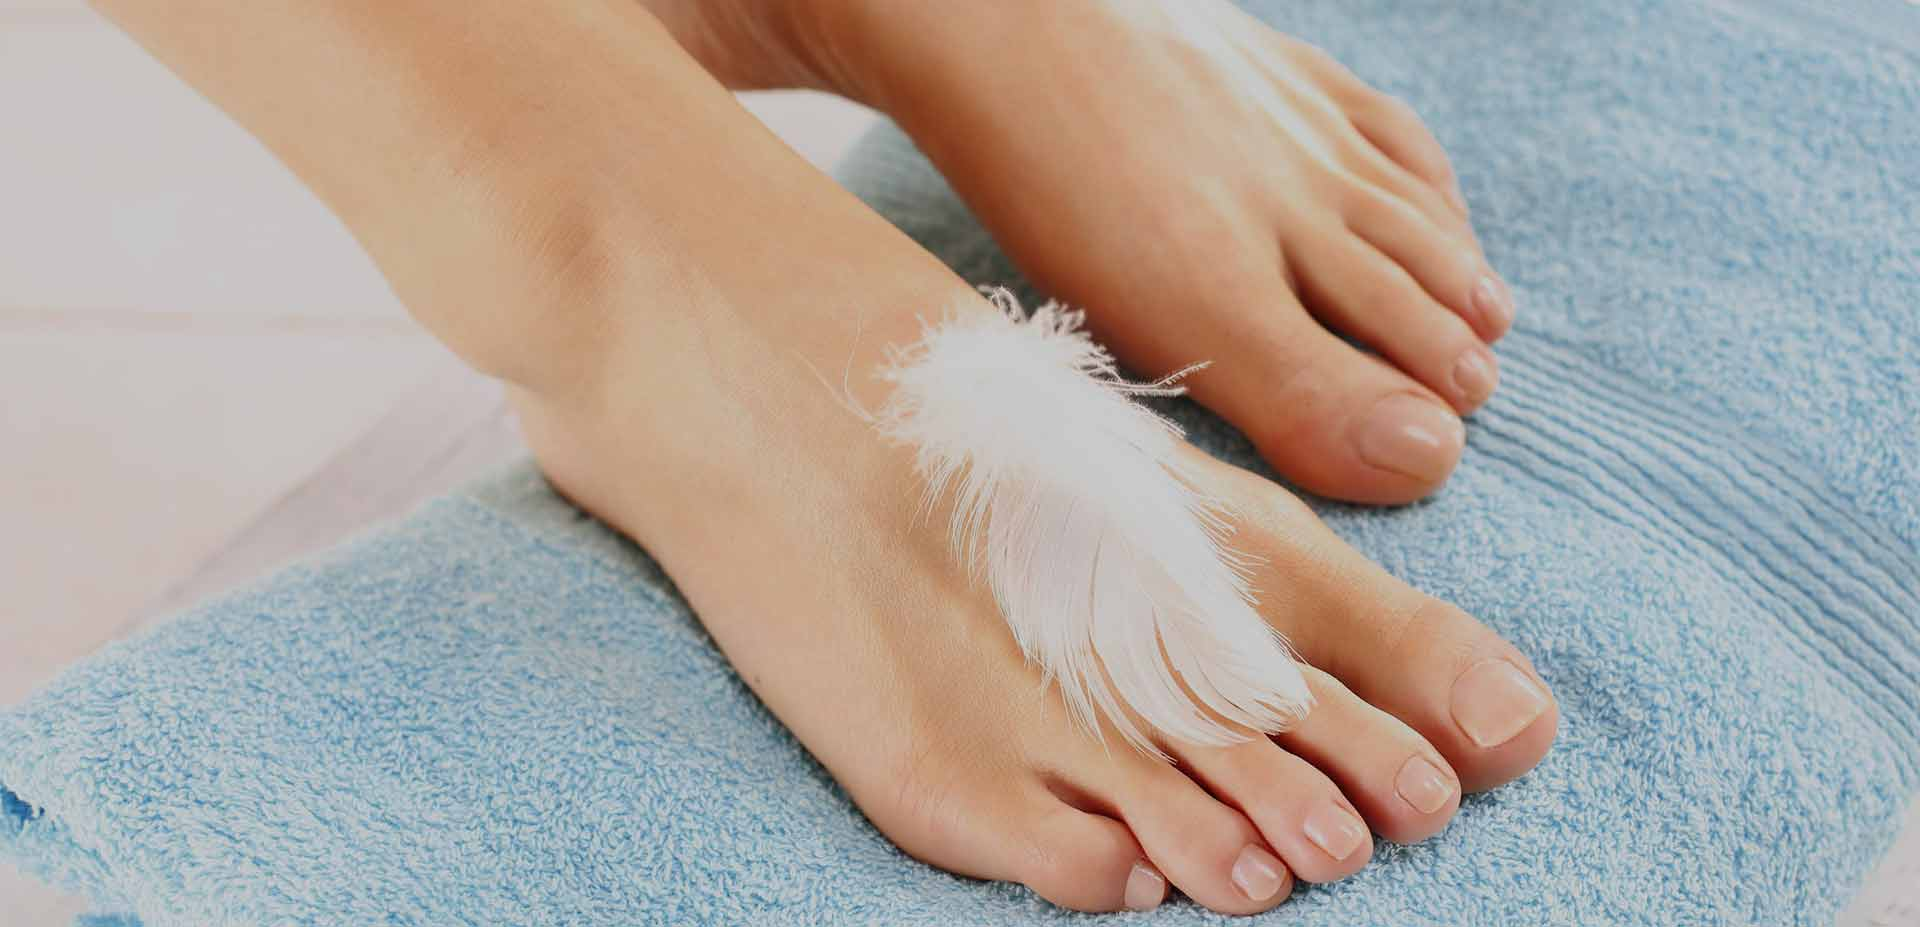 header image for removing foot calluses and corns post